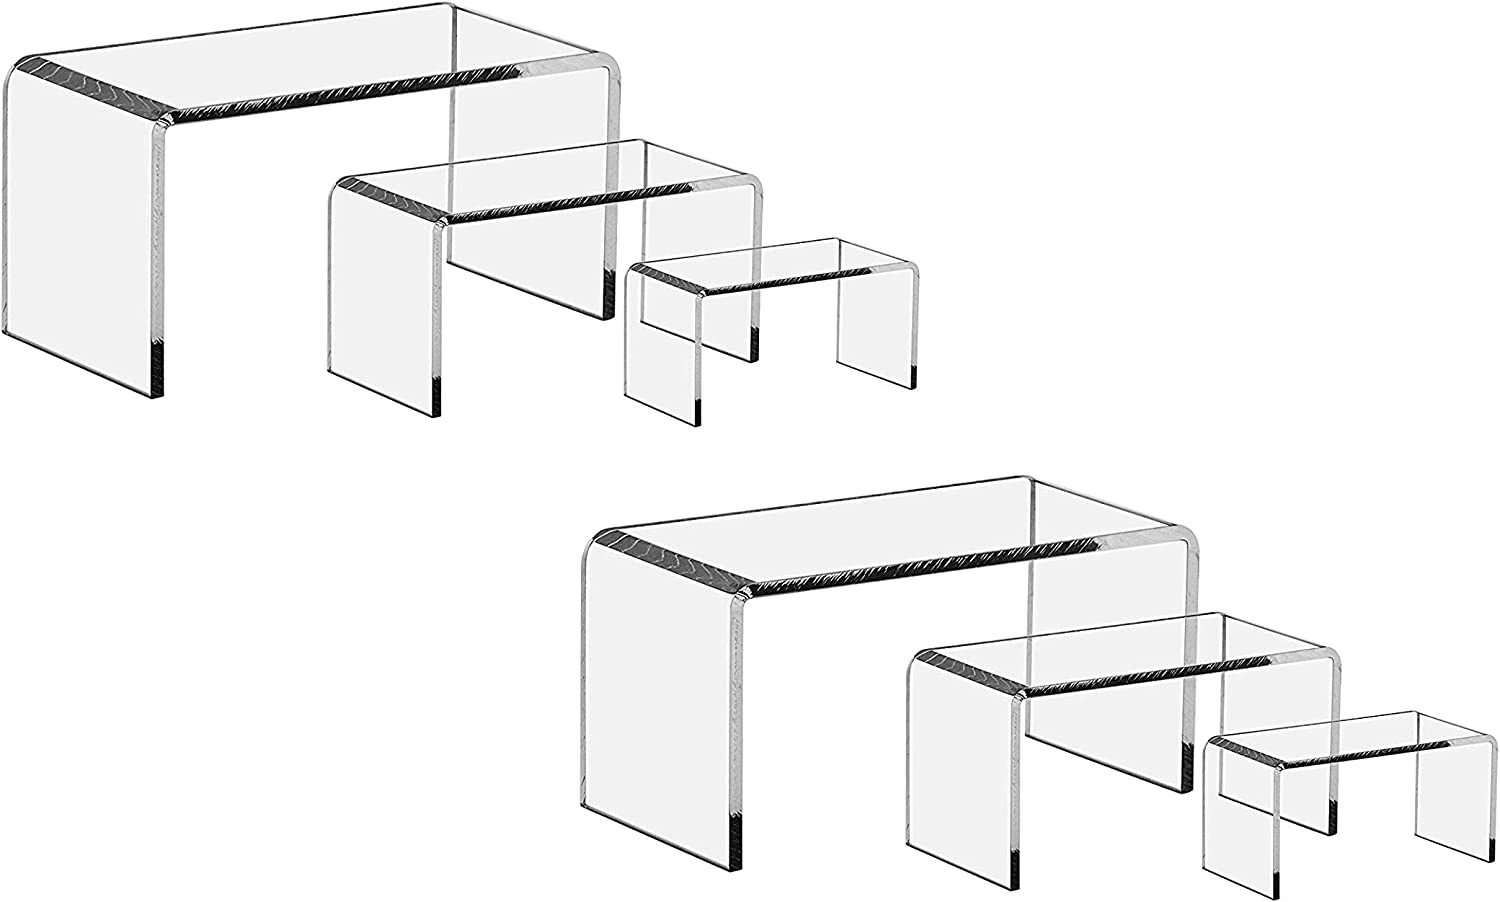 6 Pieces Set Acrylic Display Stand Ship Free Clear Acrylic Display Riser Set